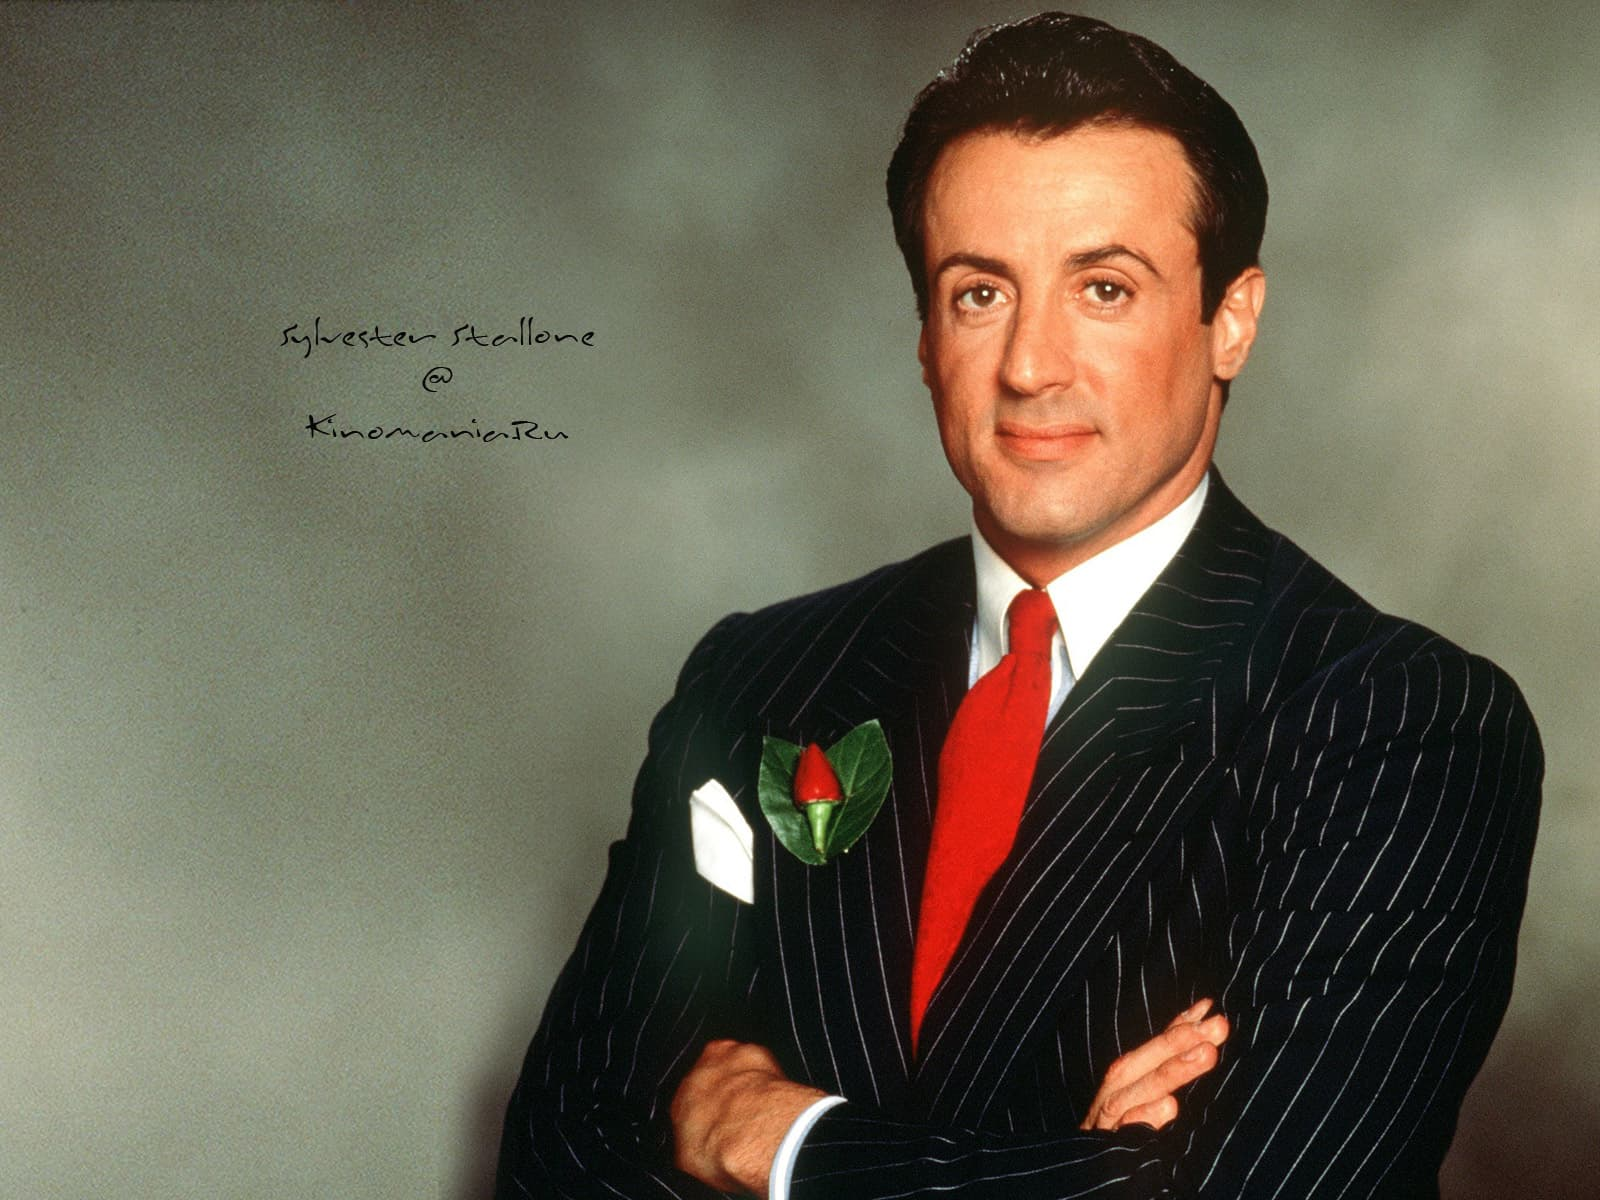 Young Sylvester Stallone Wallpapers